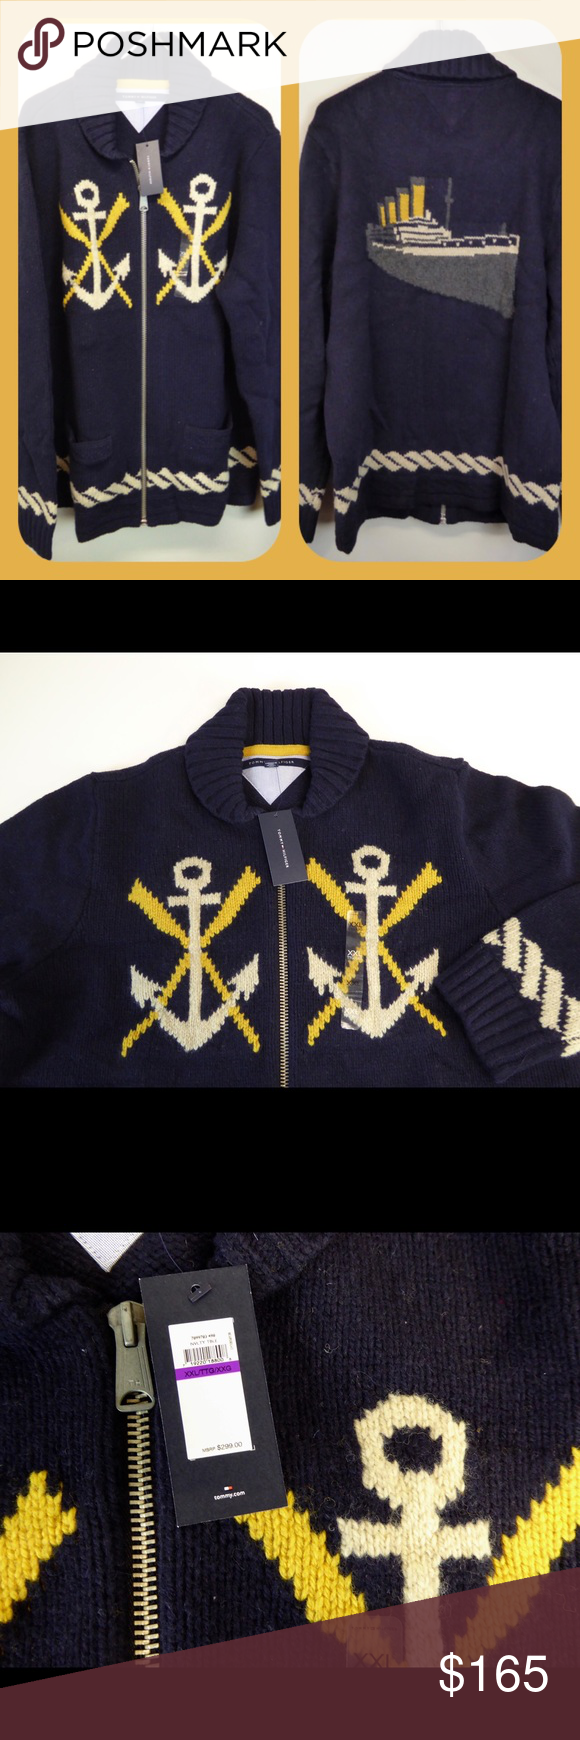 "Tommy Hilfiger Naval Steamer Sweater Anchors 🛳⚓️ Beautiful, long sleeve knit cardigan sweater / light jacket.  Mock/shawl style collar, full zip front & 2 front pockets. 🛳Naval theme with ⚓️anchors & rope design on front & a beautiful steamer ship on back.  Zipper pull has ""TH"" branding with a small Tommy flag embroidered on a sleeve cuff.  ""Cowichan"" style sweater has incredible detail, quality & heft.  Perfect for boating season.  Wear as a sweater or light jacket! Hand wash. 79%…"